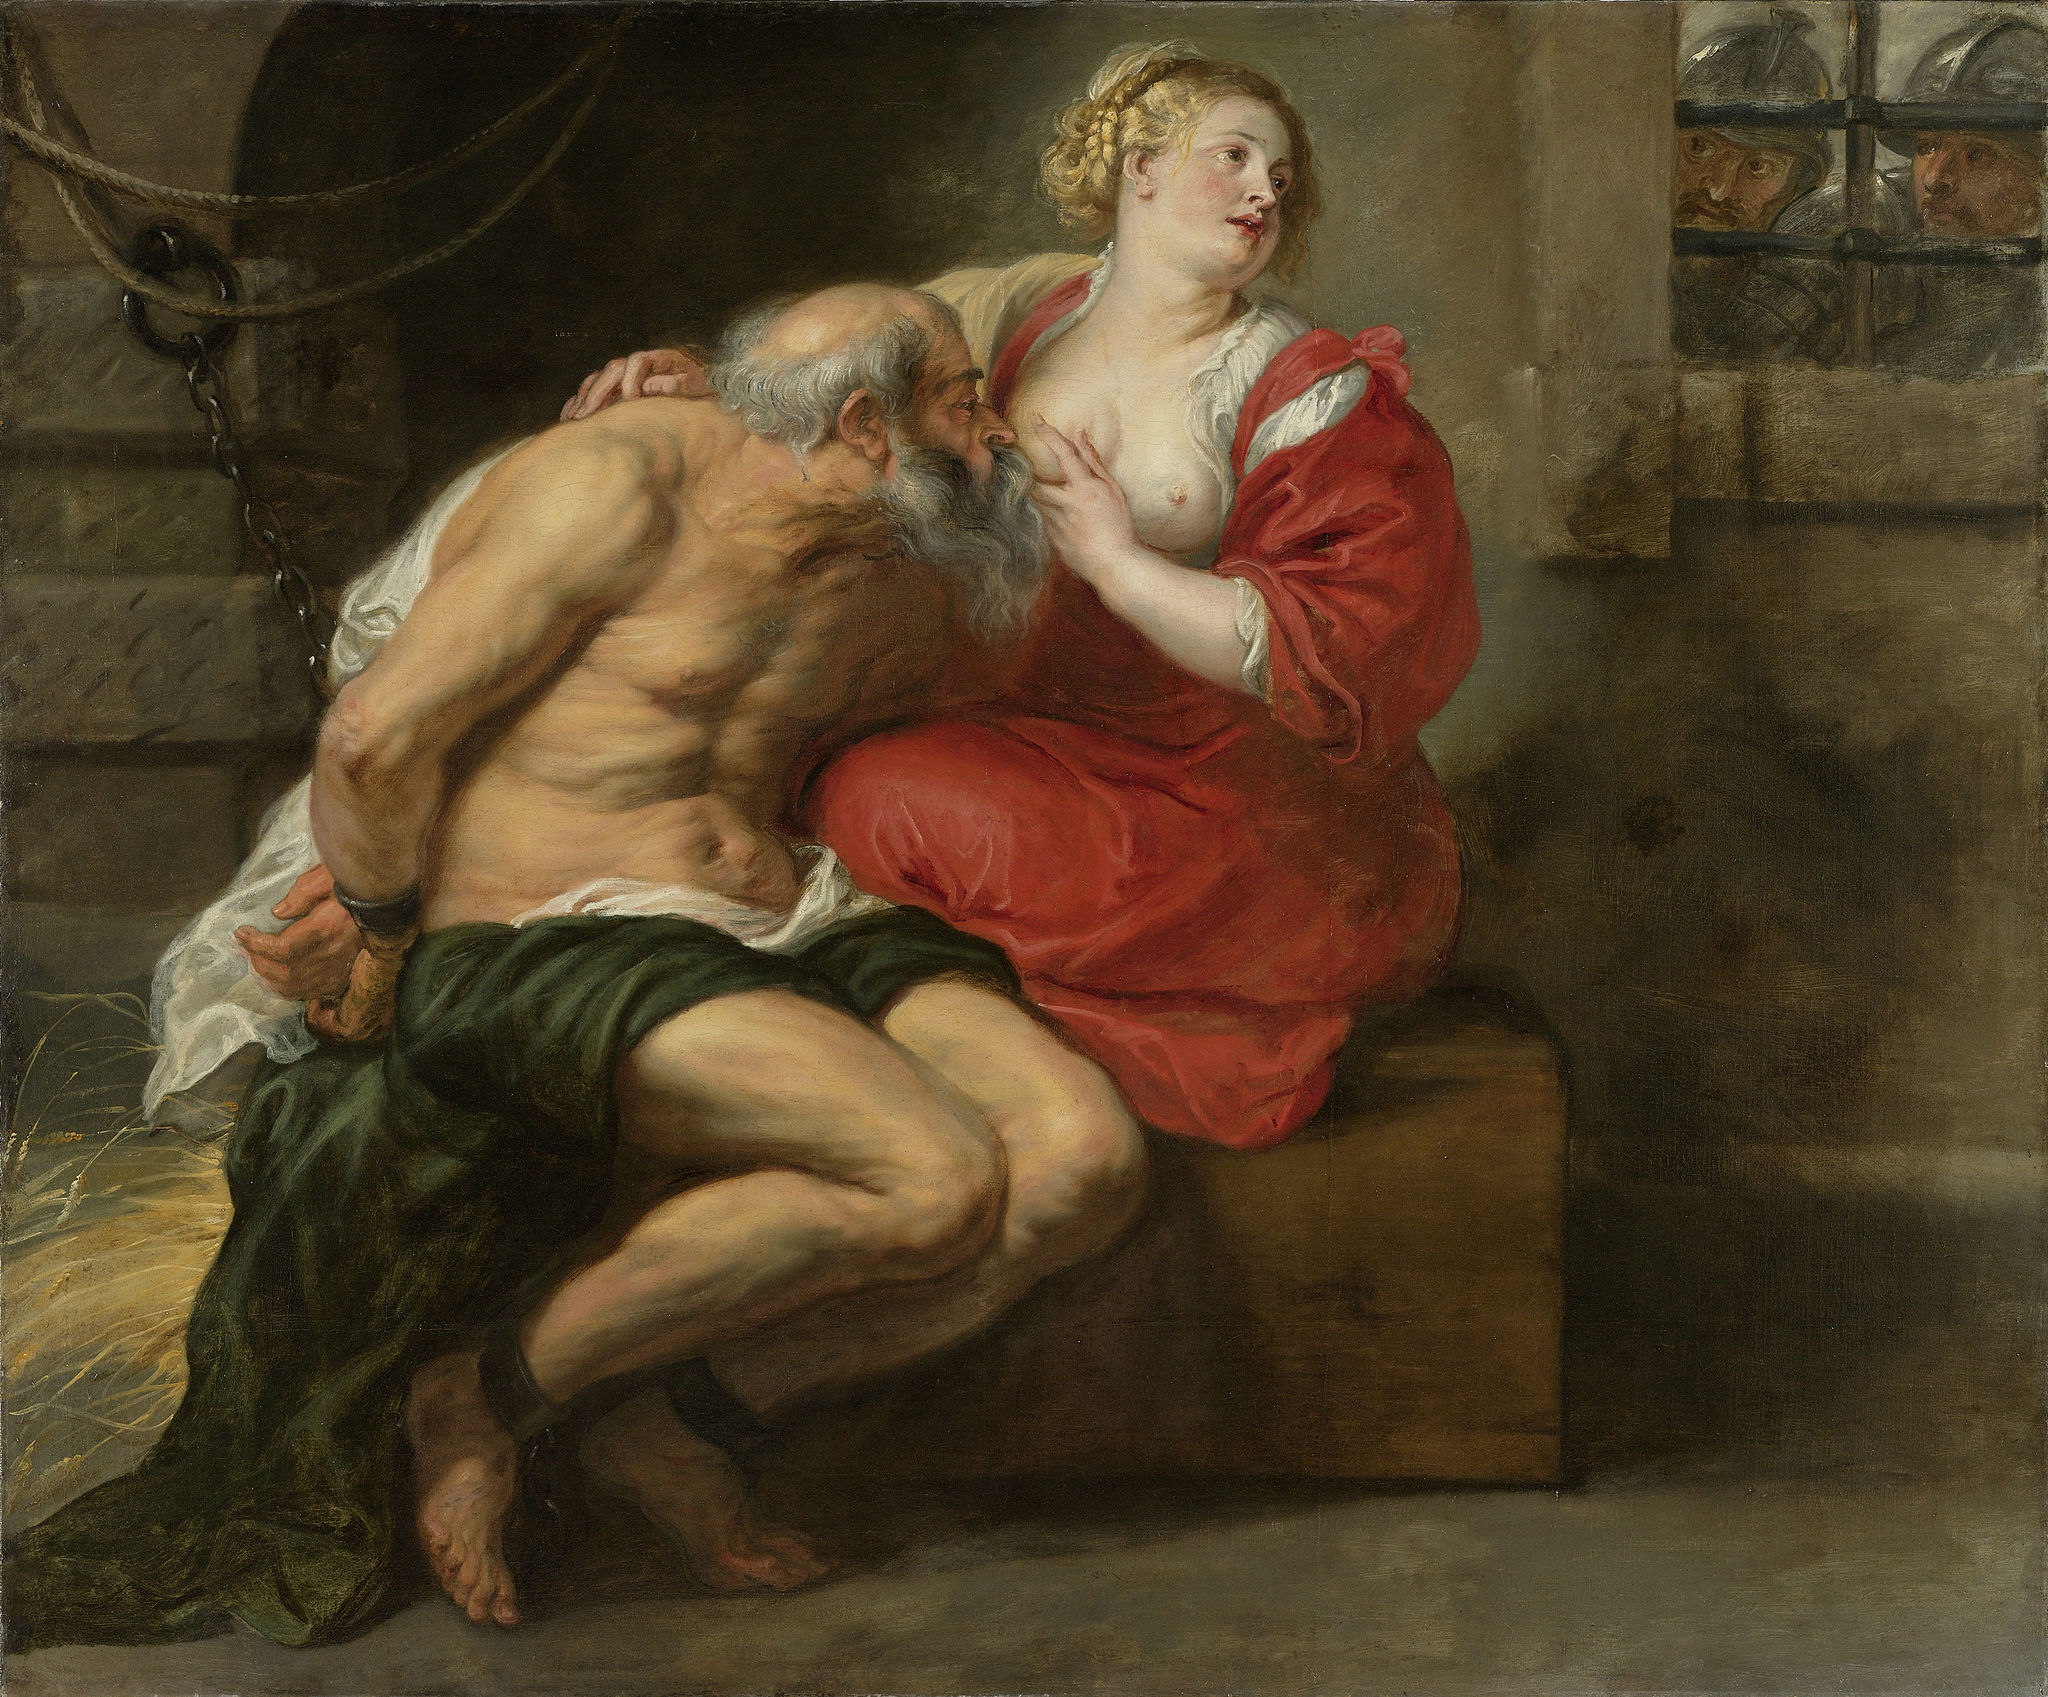 Peter_Paul_Rubens_-_Cimon_en_Pero (1)